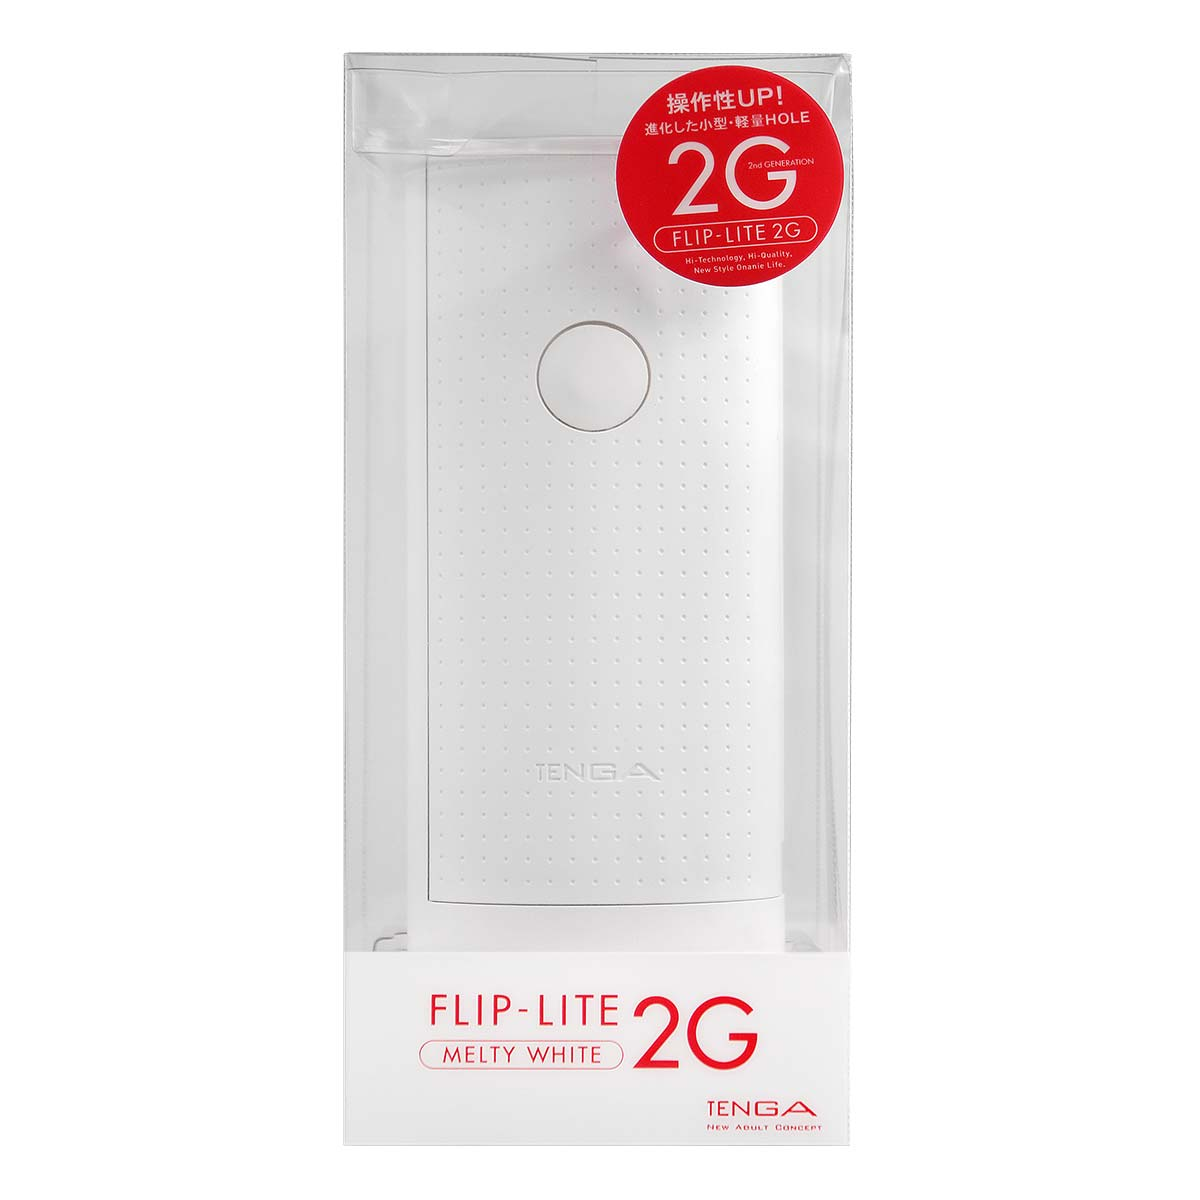 TENGA FLIP-LITE 2G MELTY WHITE